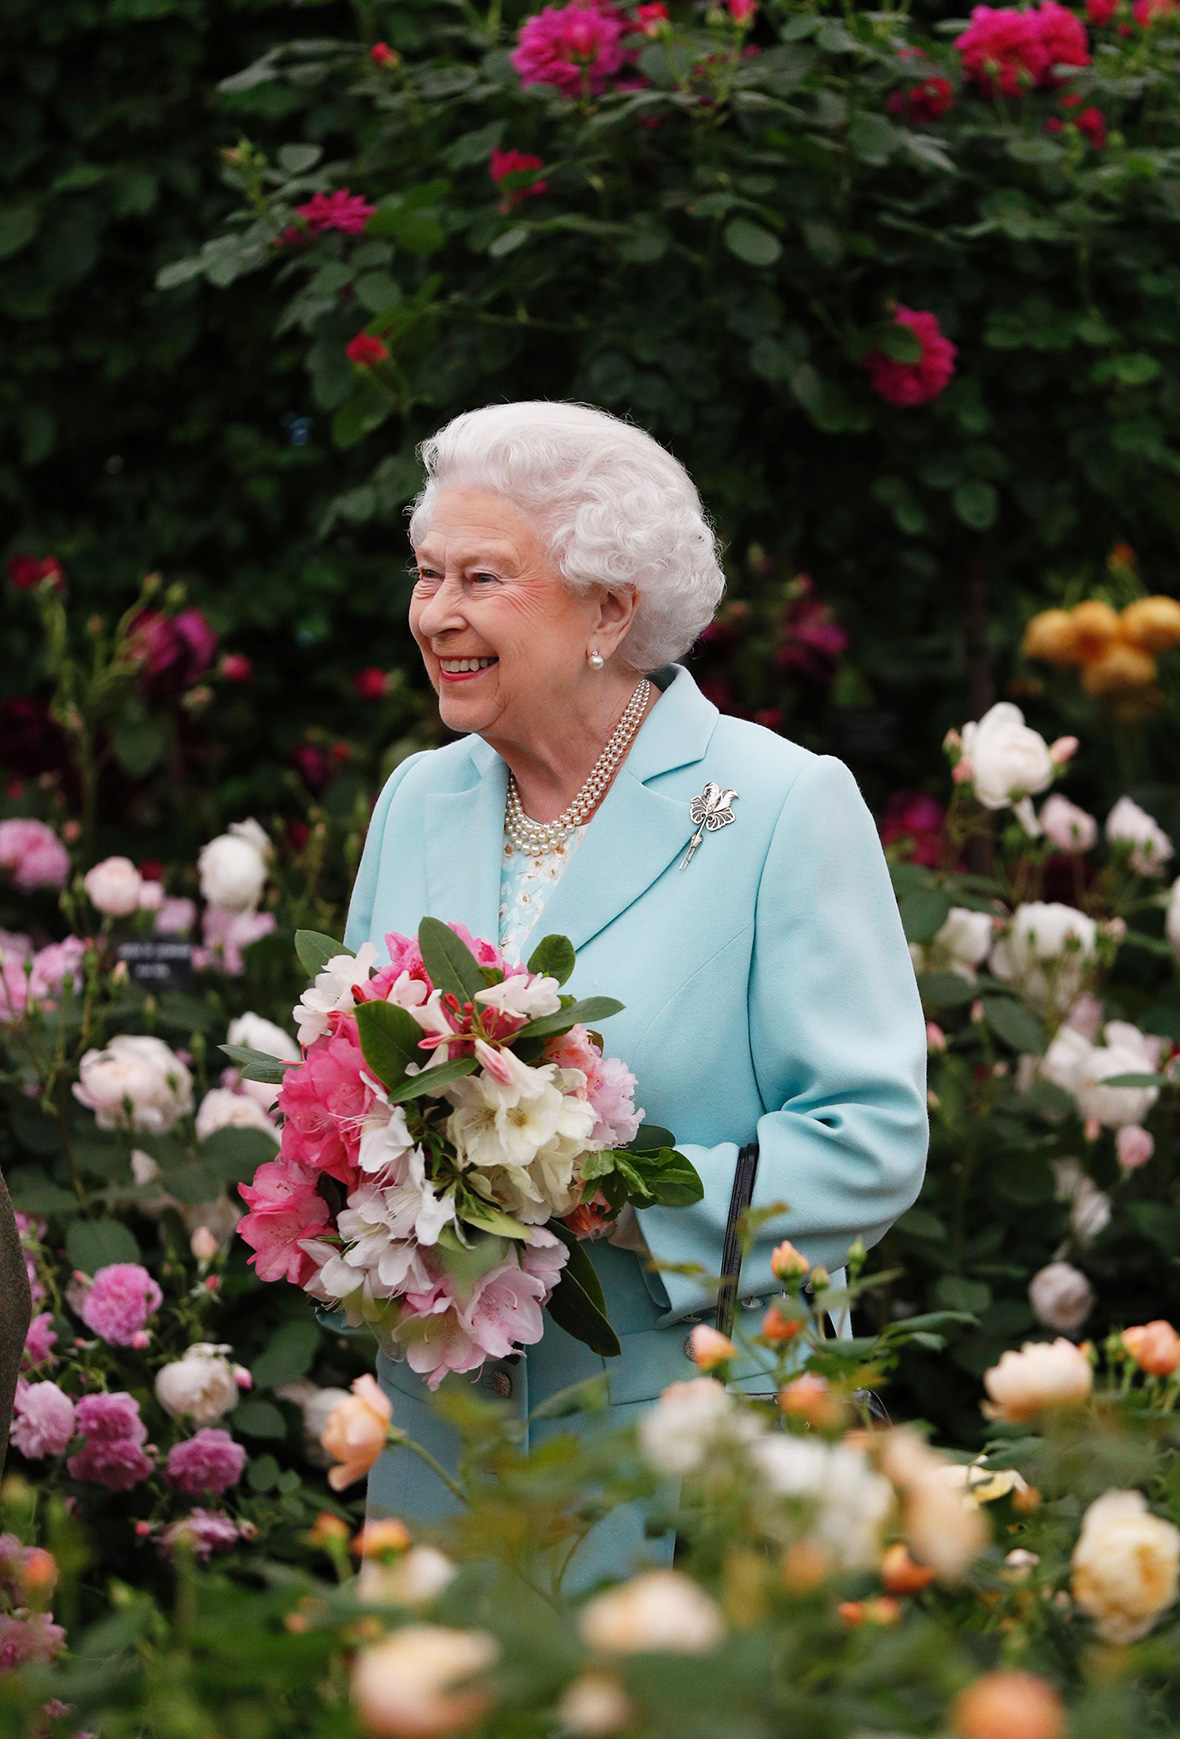 Chelsea flower show 2016 photos of the queen prince - Royal flower show ...